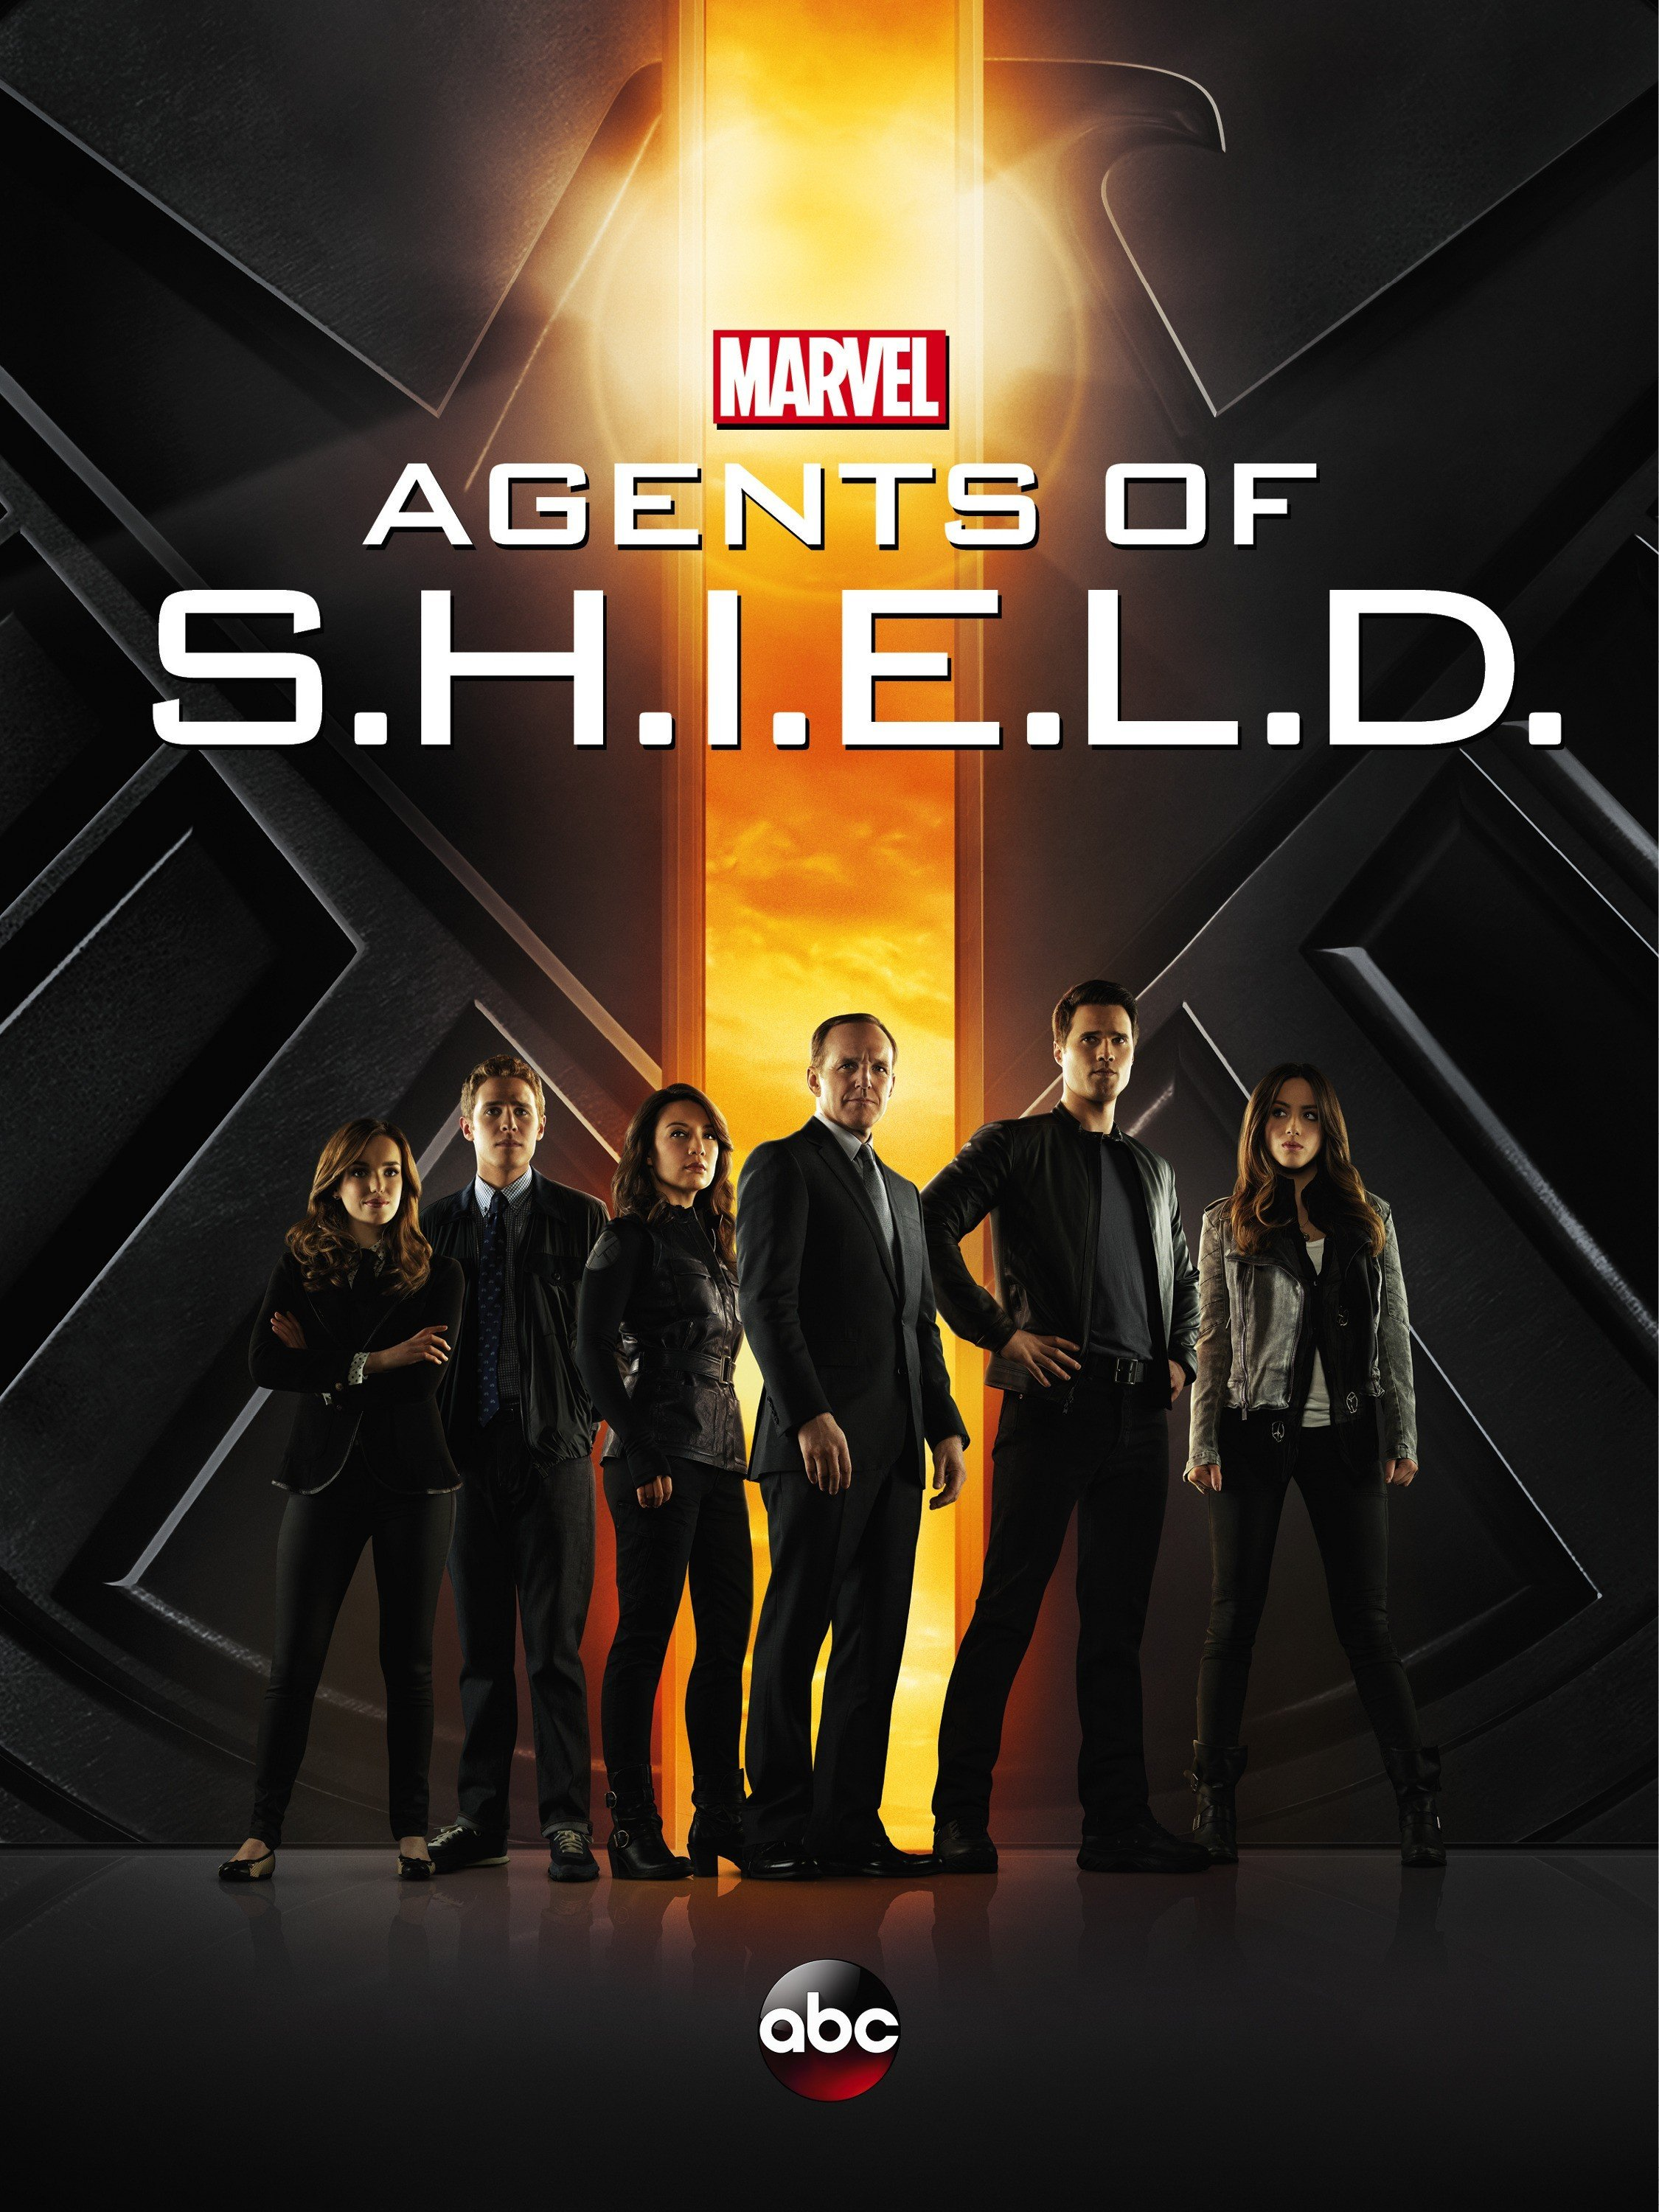 Agents of S.H.I.E.L.D. (Season 1) 神盾局特工 第一季